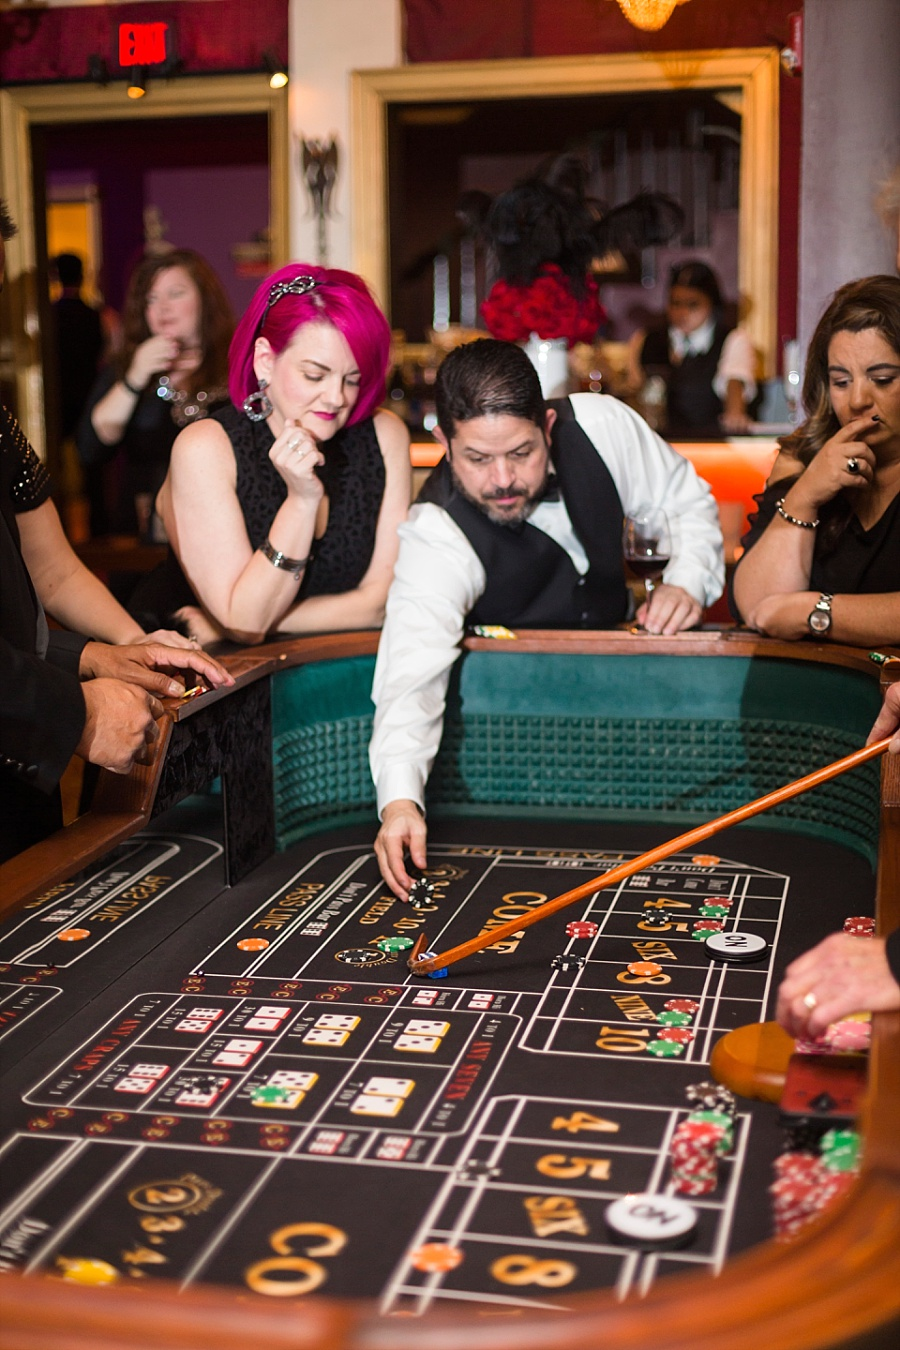 Stacy Anderson Photography 50th surprise party casino themed Majestic Metro downtoen Houston wedding event photographer_0011.jpg